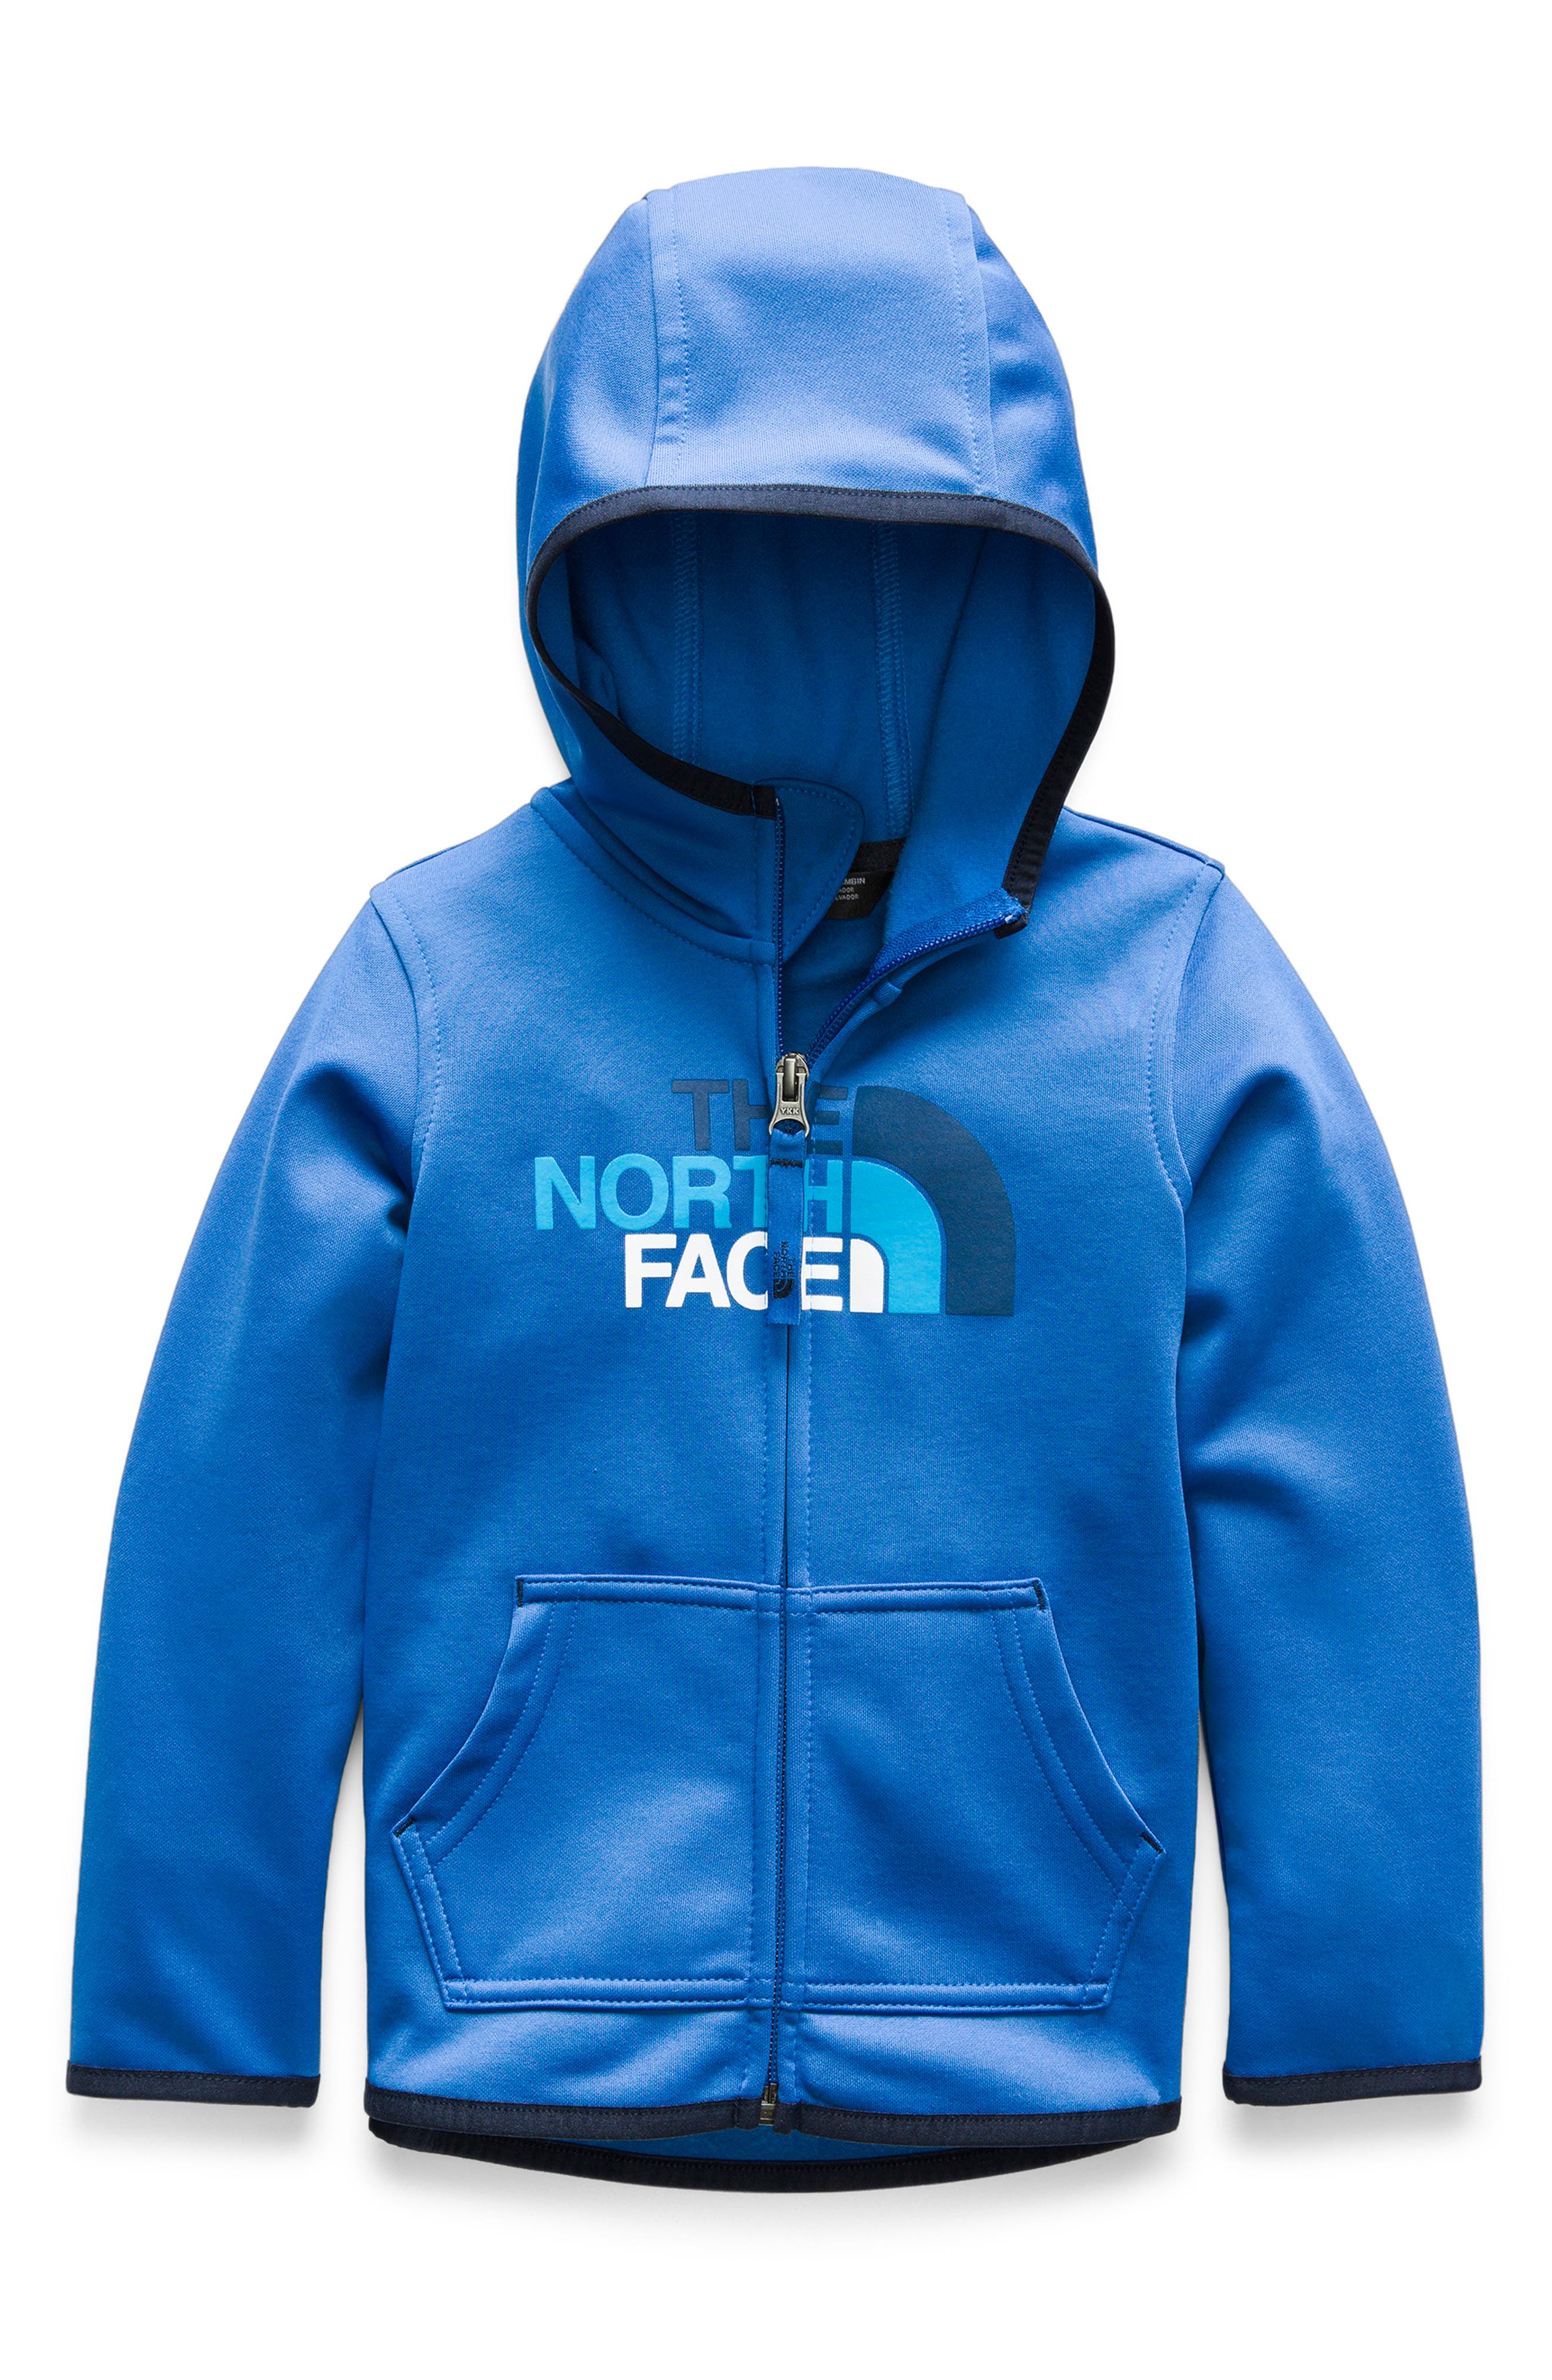 THE NORTH FACE,                             Surgent Full Zip Hoodie,                             Main thumbnail 1, color,                             TURKISH SEA